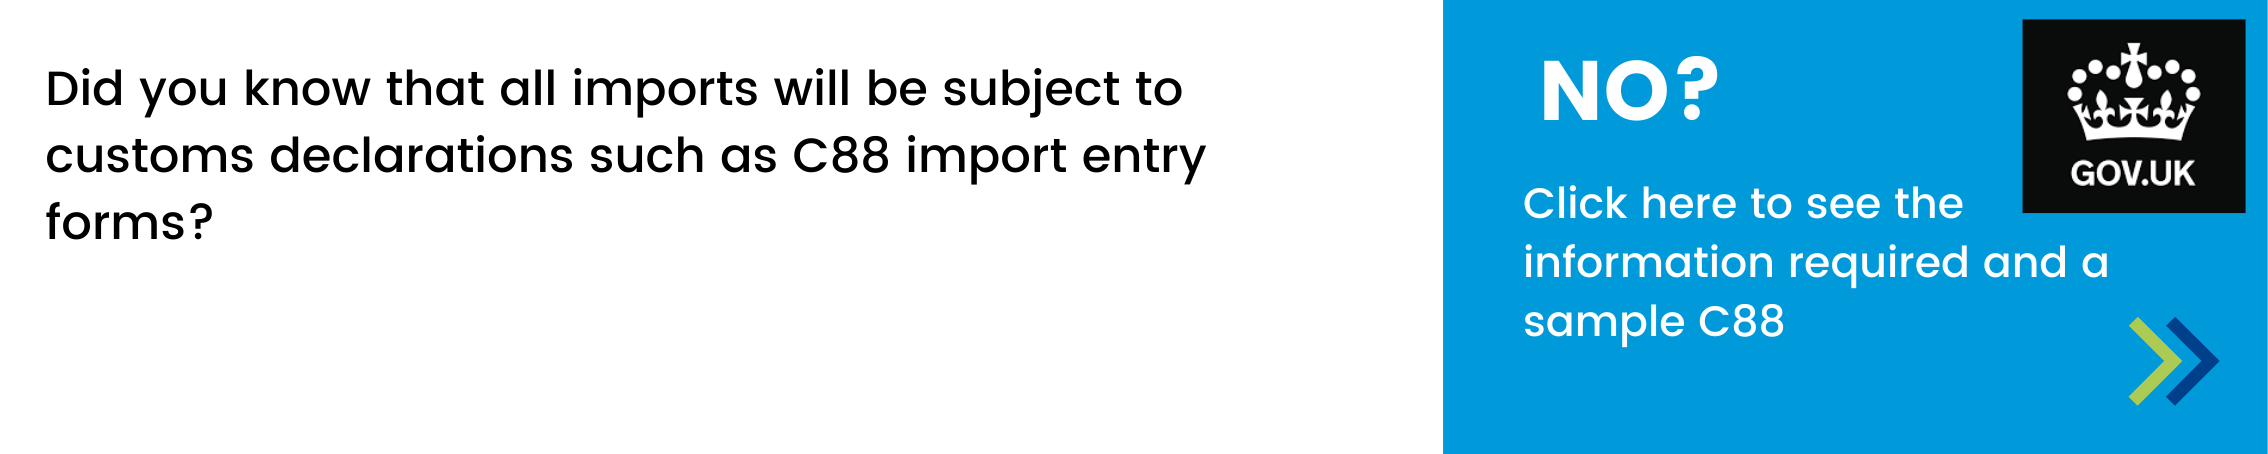 Did you know that all imports will be subject to customs declarations such as C88 import entry forms? Click here to see the information required and a sample C88